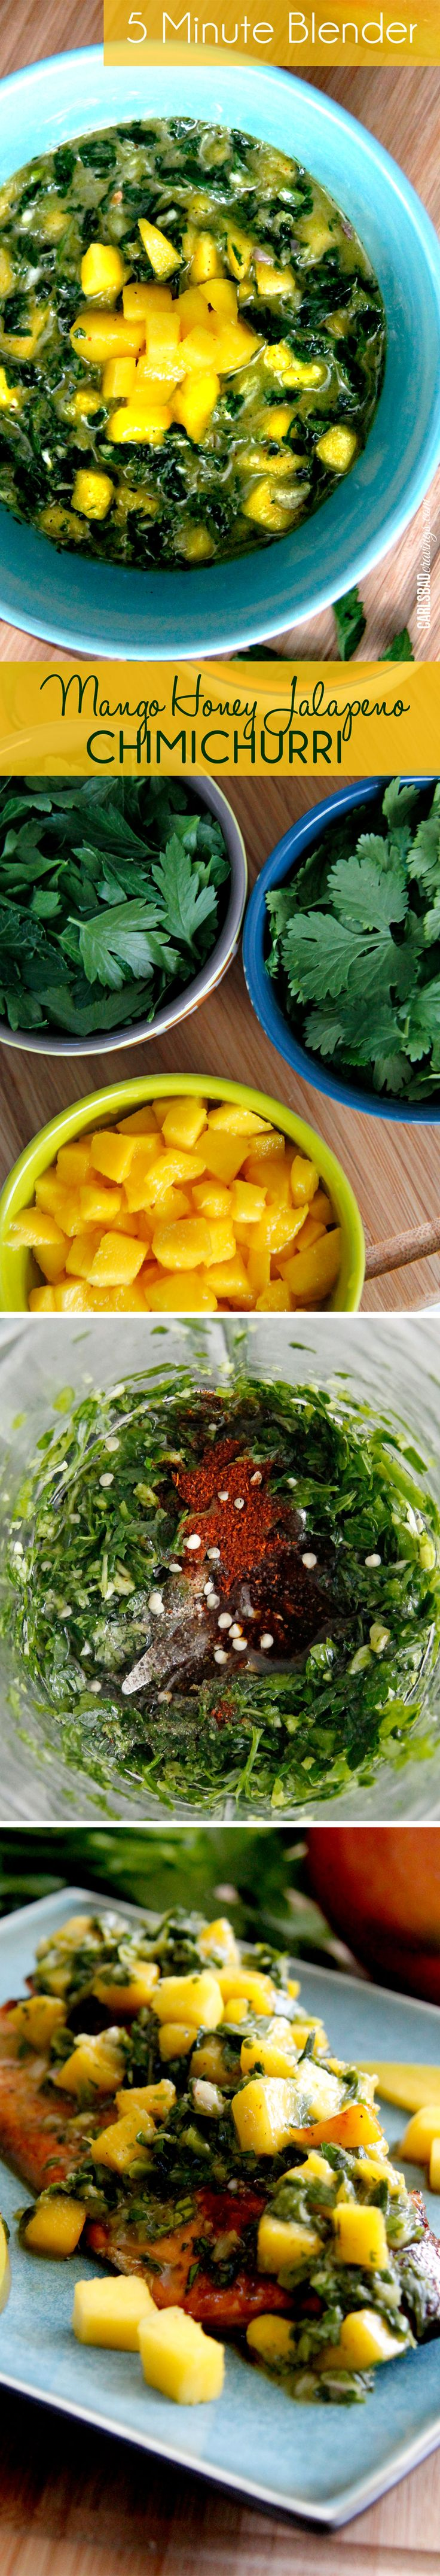 A MUST before winter! Sweet, spicy, and tangy all brightened by the refreshing mangoes! In 5 minutes you can instantly transform chicken, steak or fish with this flavor overload - the best kind of flavor overload.